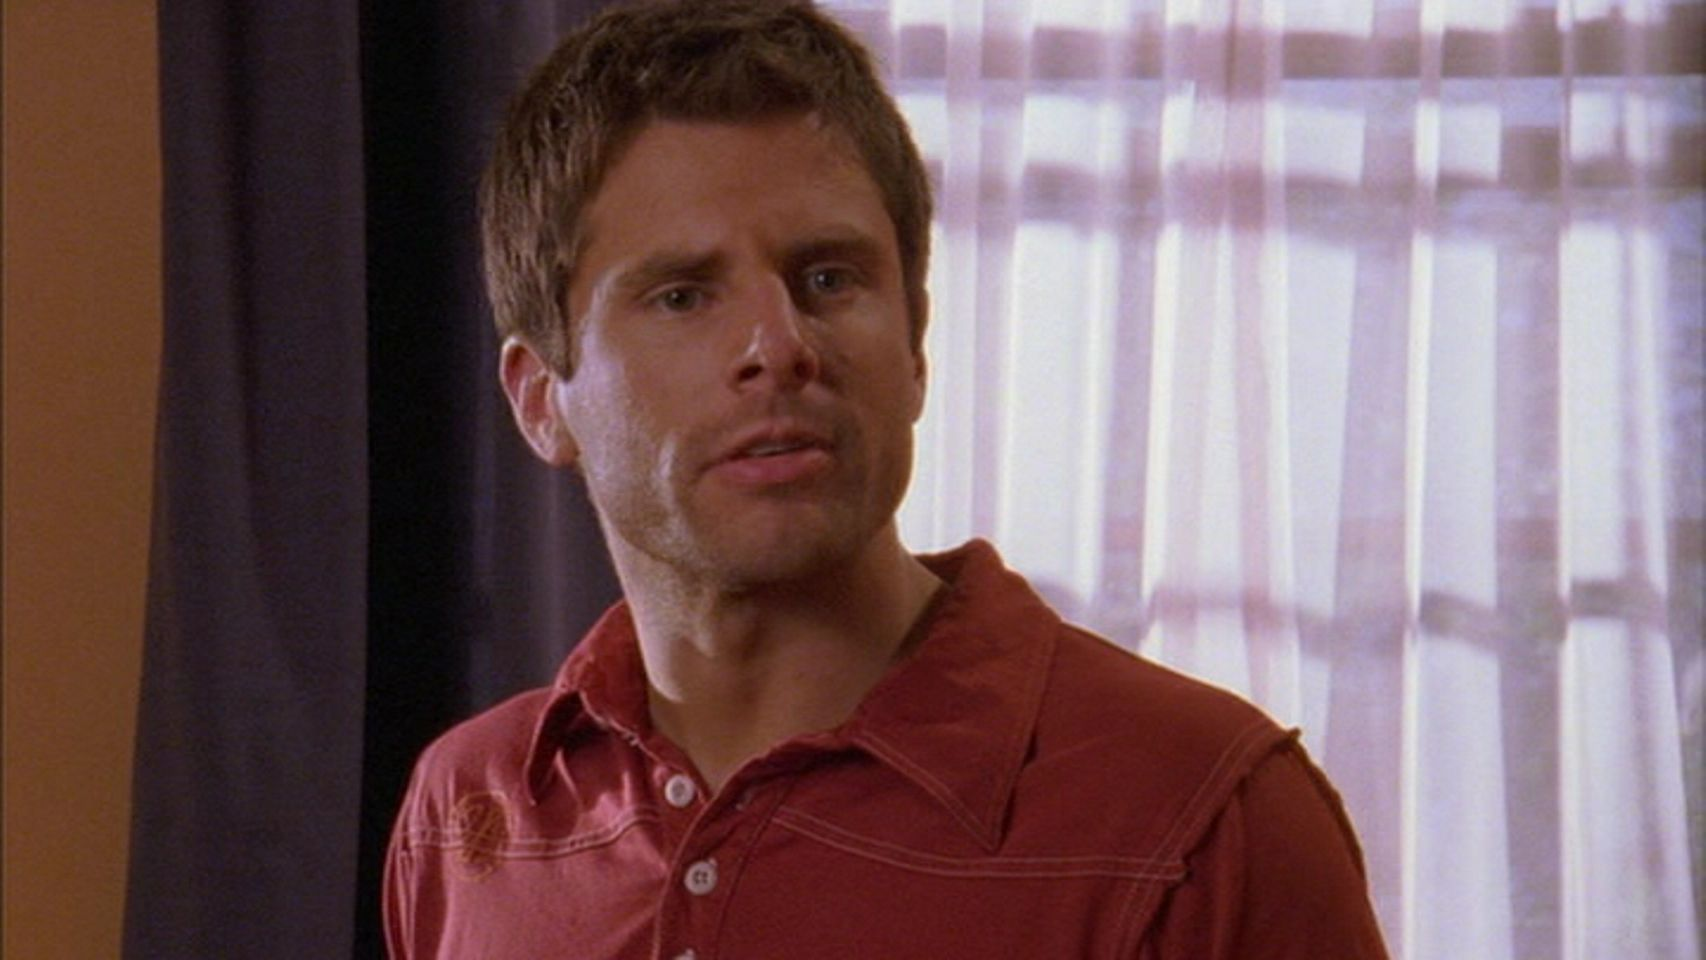 When does shawn and juliet start dating on psych